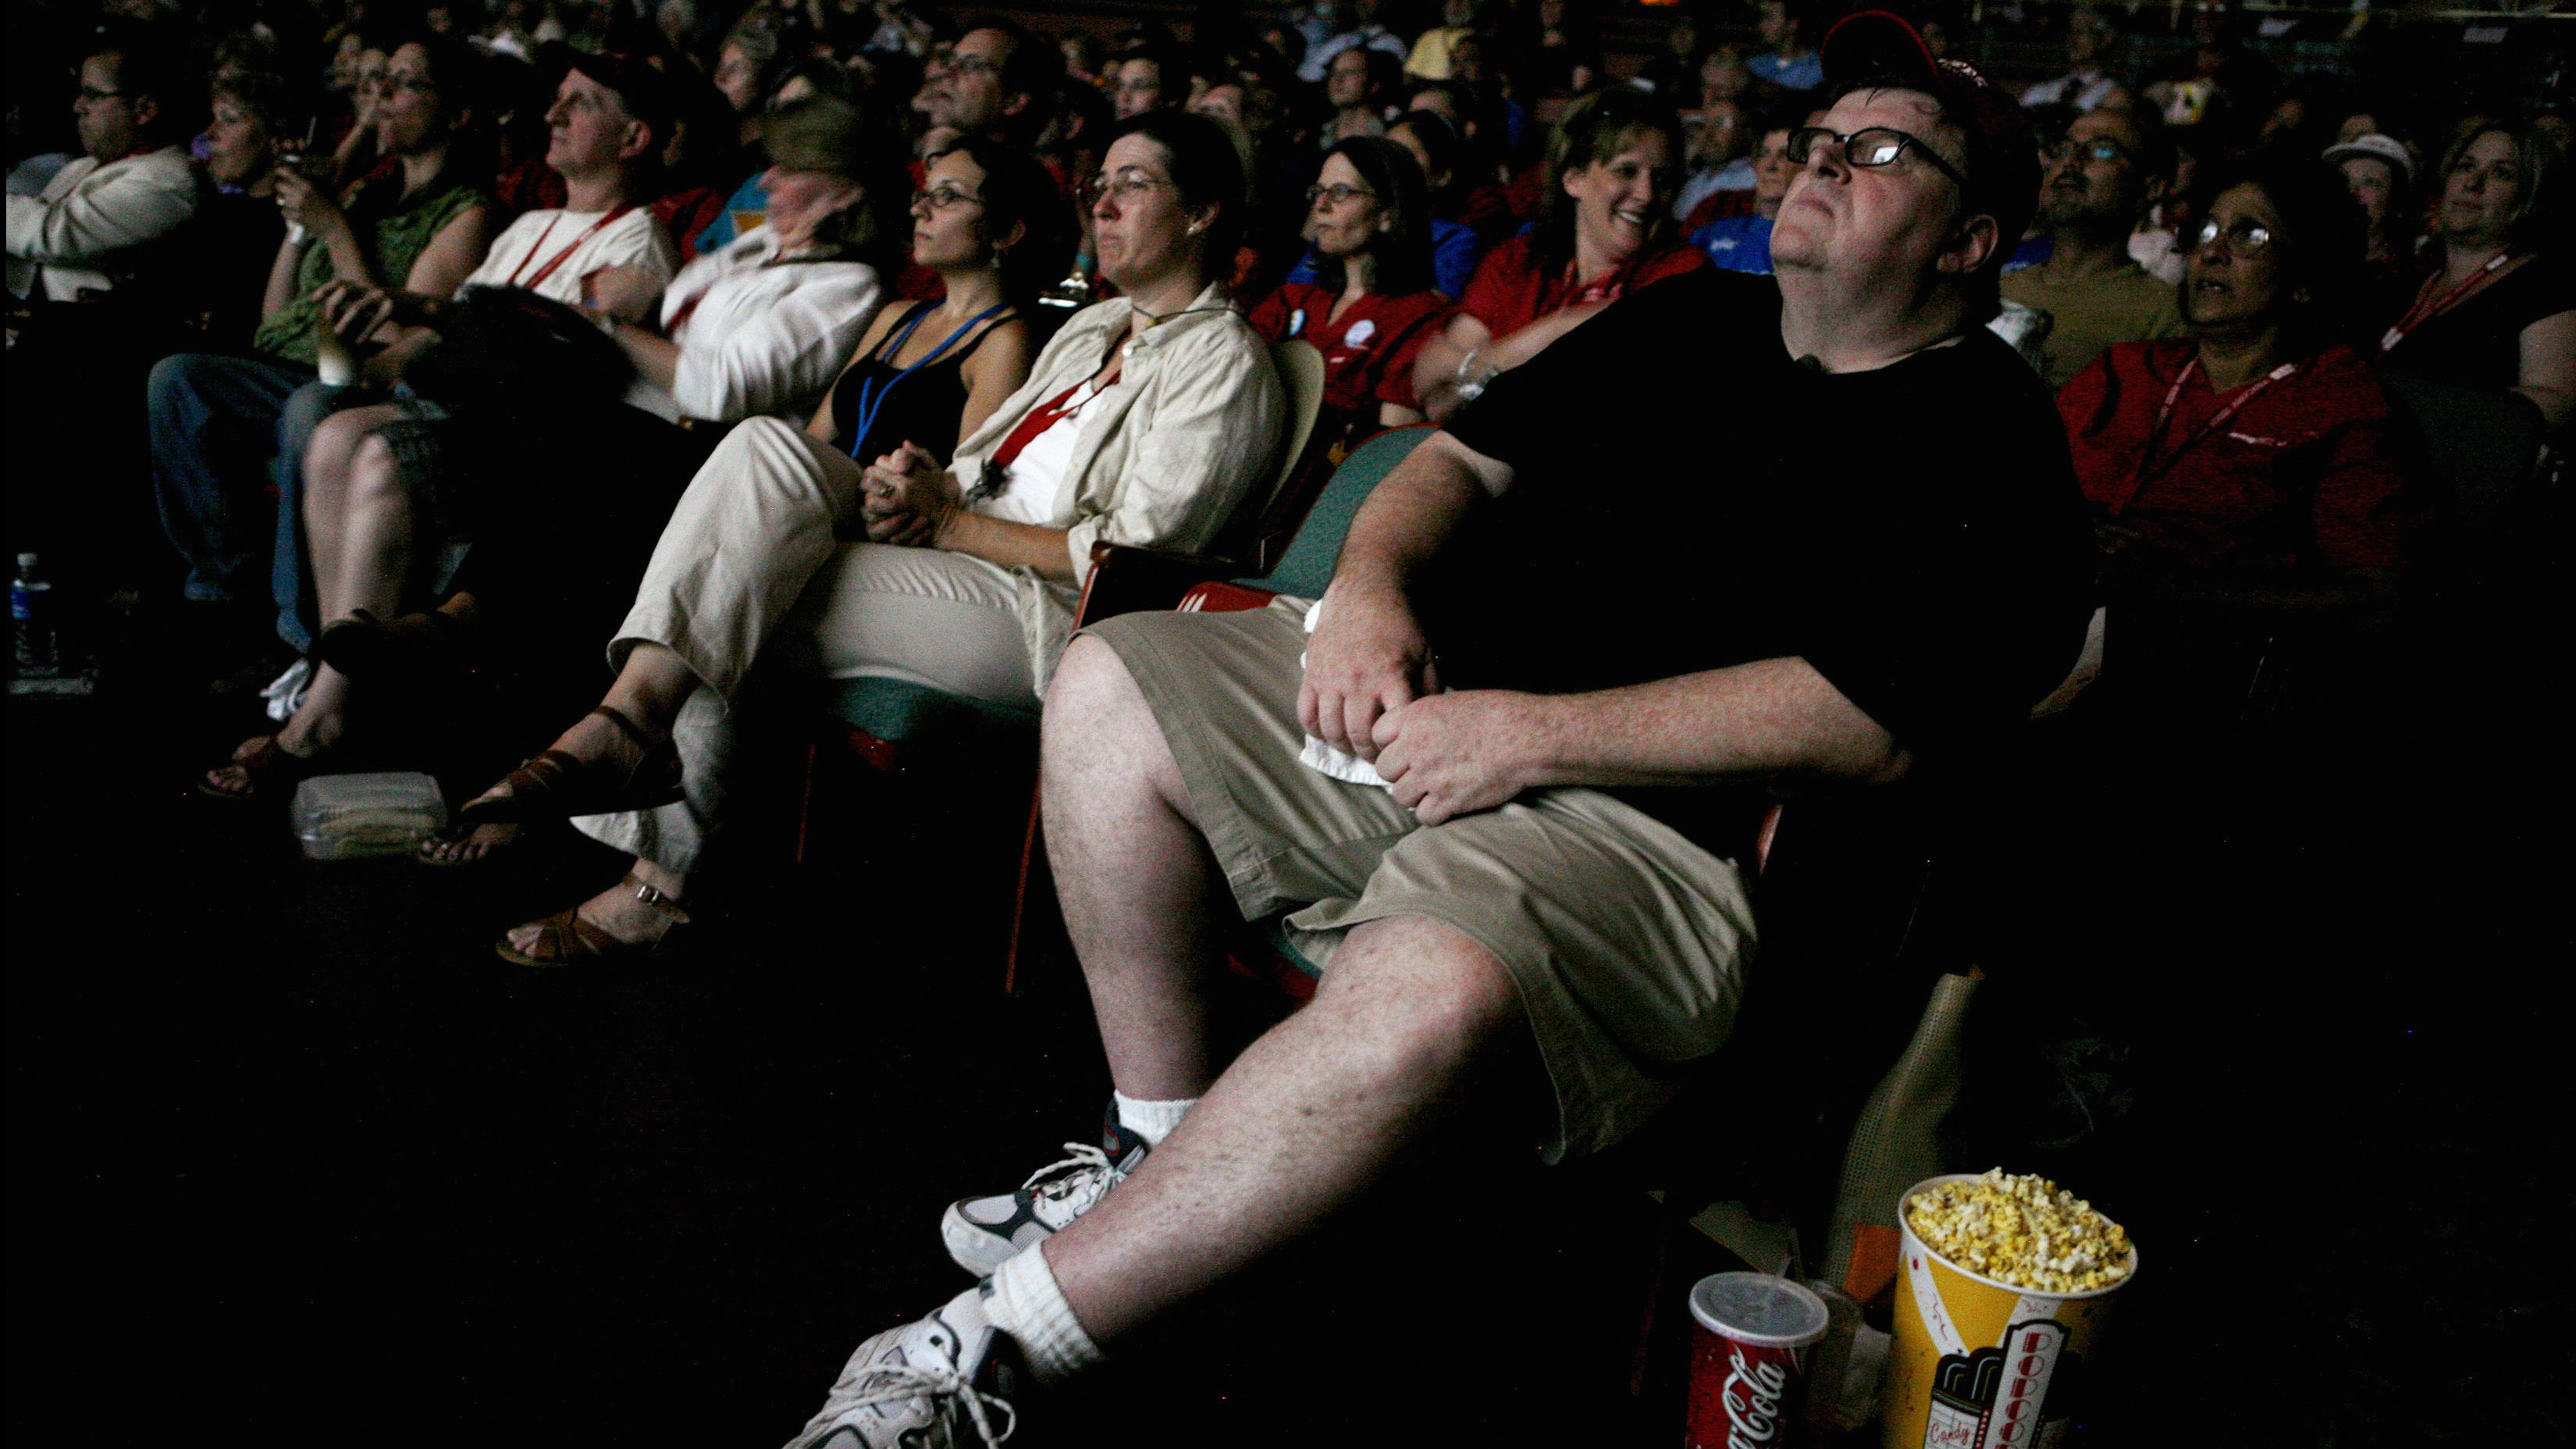 """Filmmaker Michael Moore watches his documentary """"SiCKO"""" during a special screening for the California Nurses Association (CNA) at the Crest Theater in Sacramento June 12, 2007. REUTERS/Max Whittaker (UNITED STATES) - RTR1QQM9"""